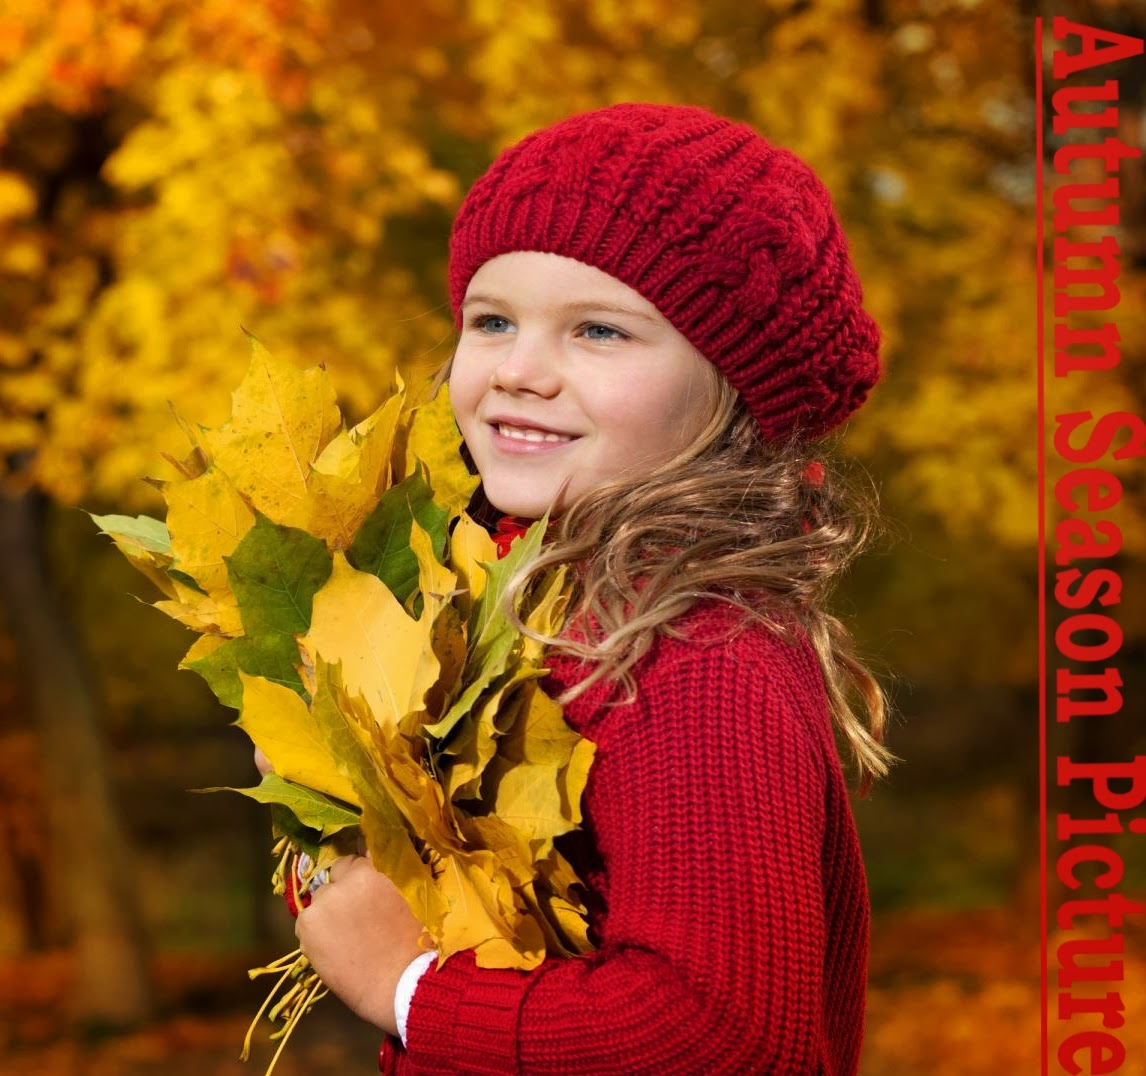 Cute Baby Autumn Wallpapers